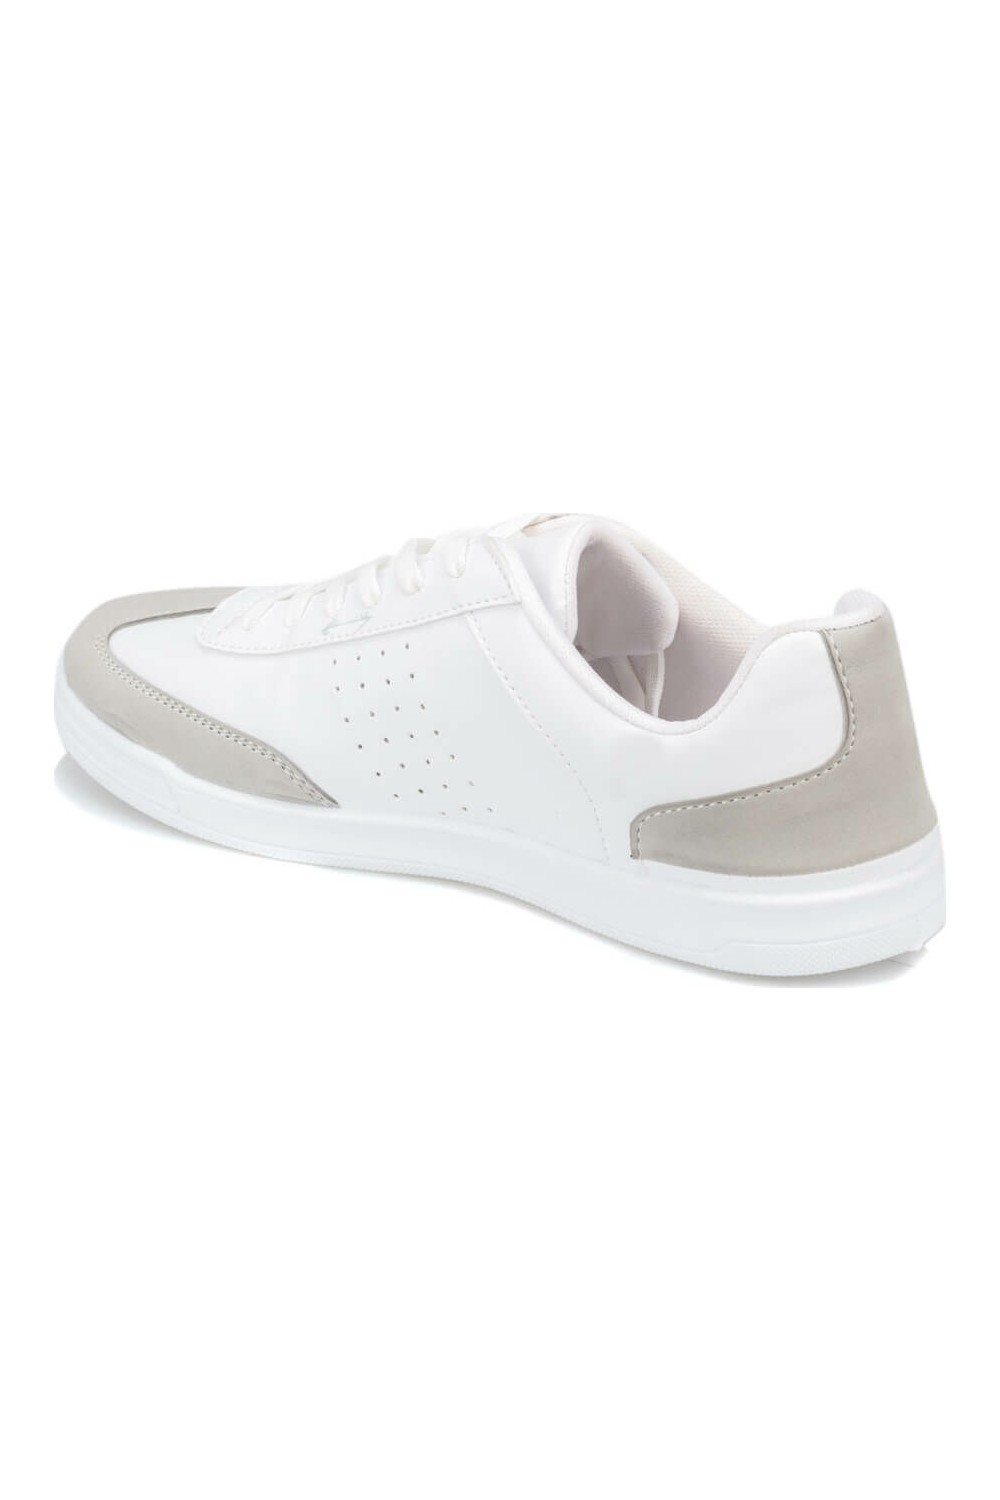 Polaris Men's Sneakers